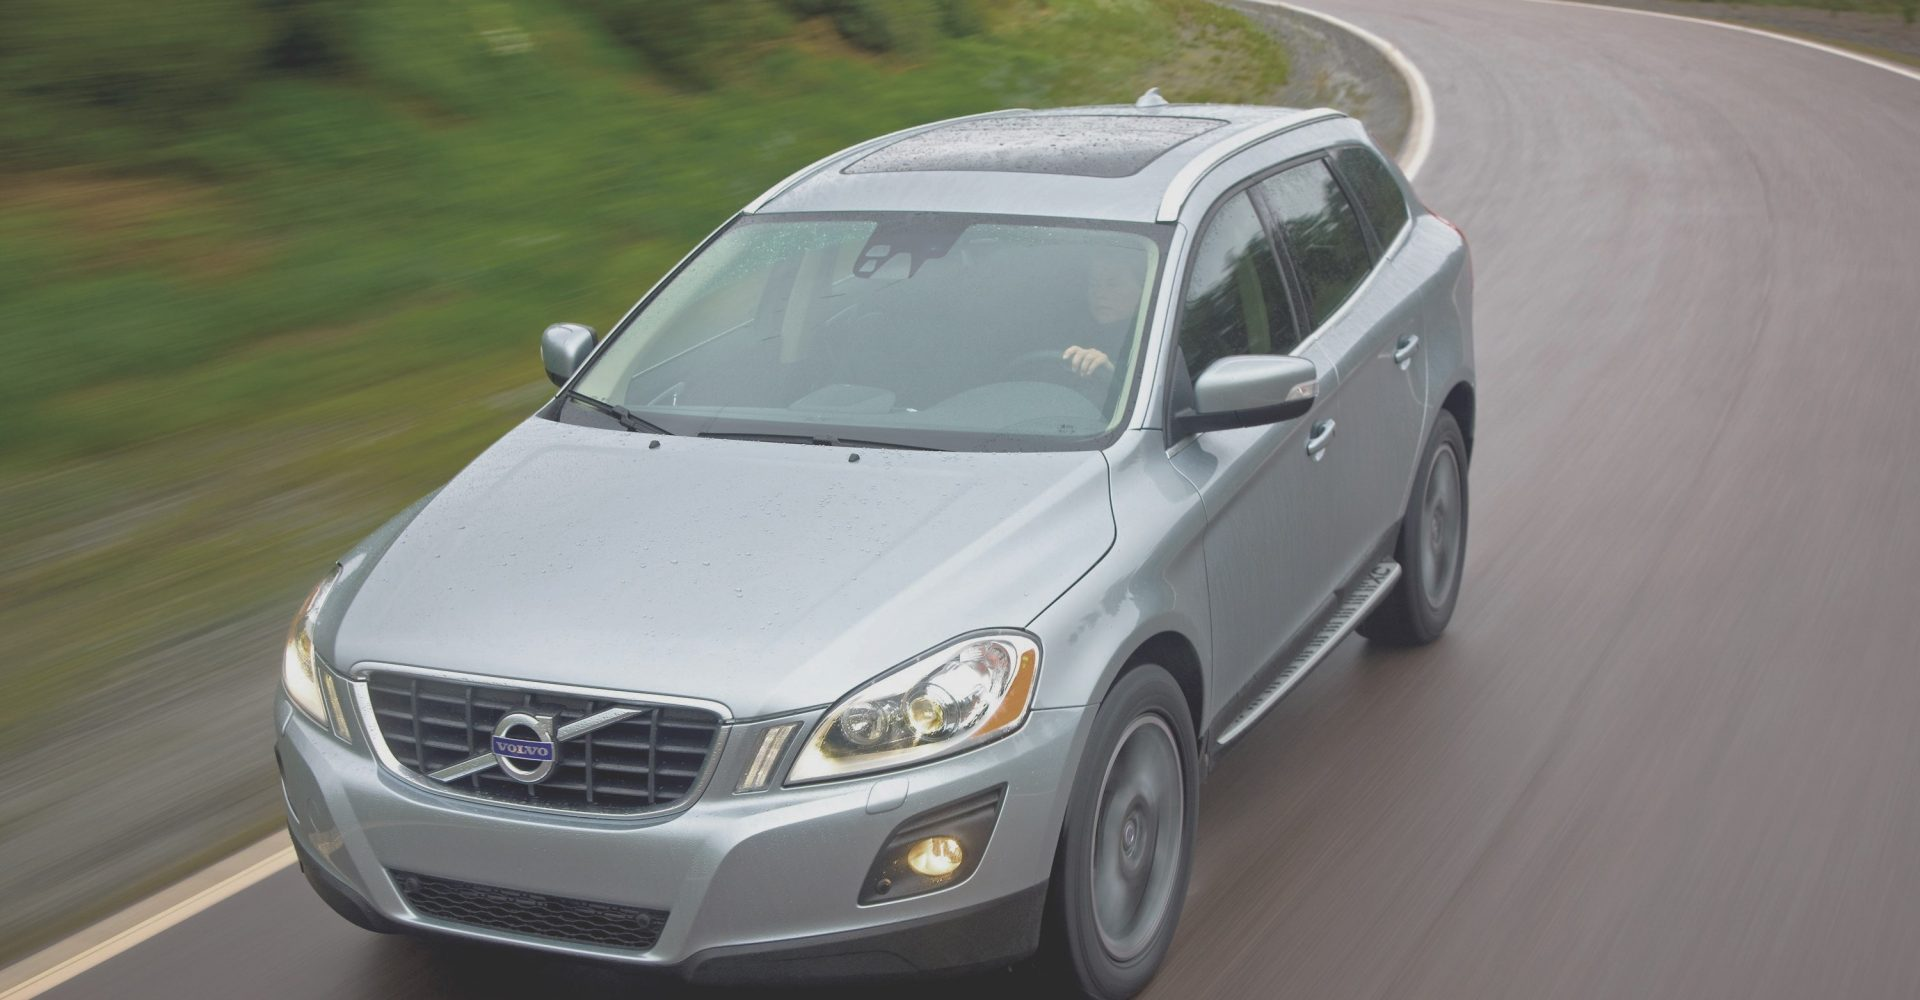 Volvo recalls close to 170,000 cars in the UK for seatbelt fault